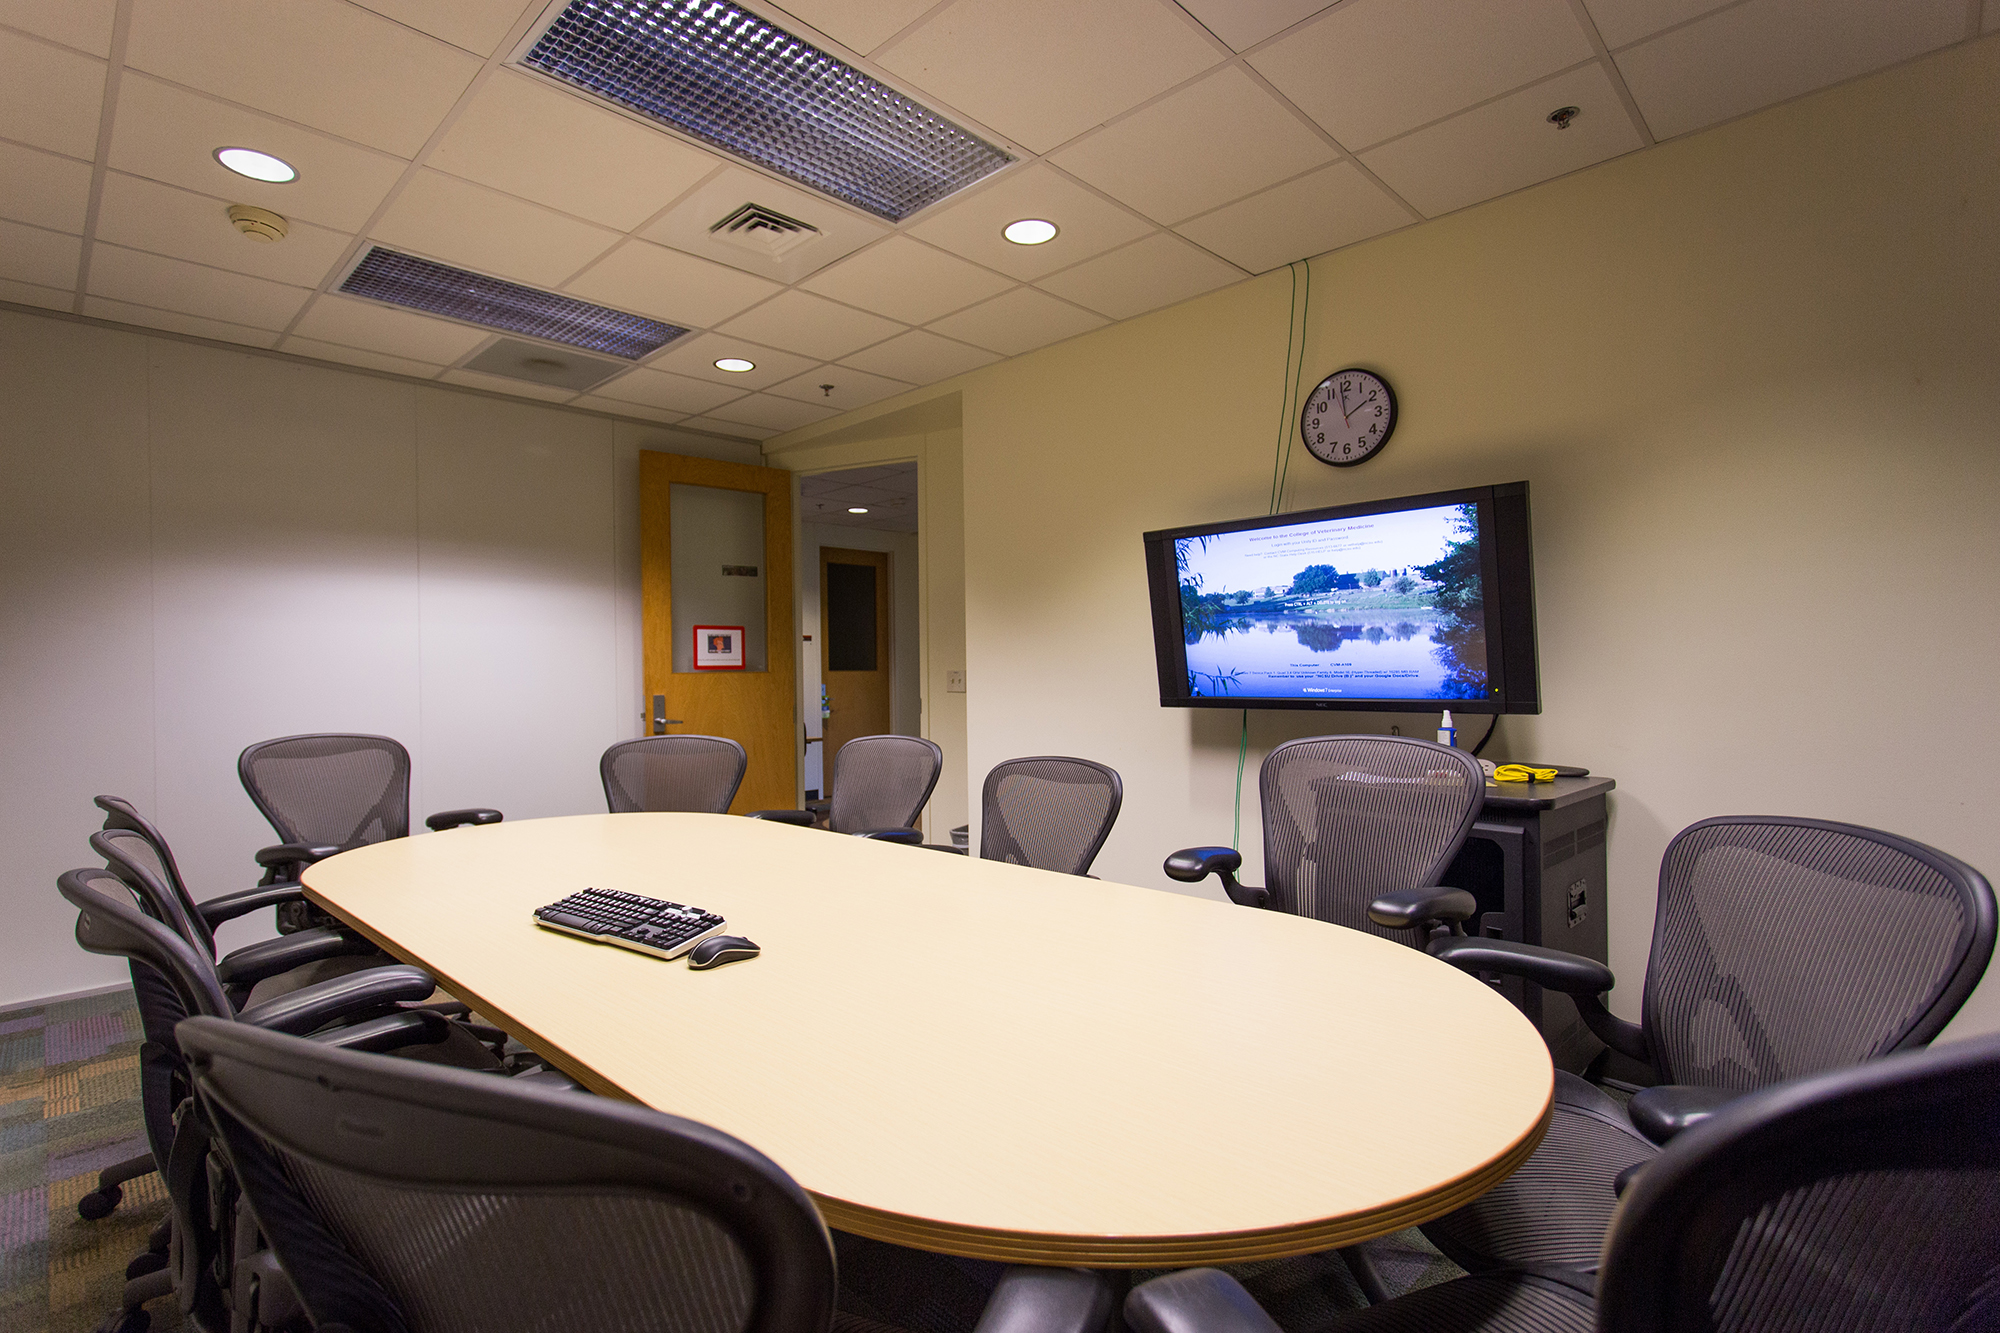 A conference room at the Veterinary Medicine Library at NC State